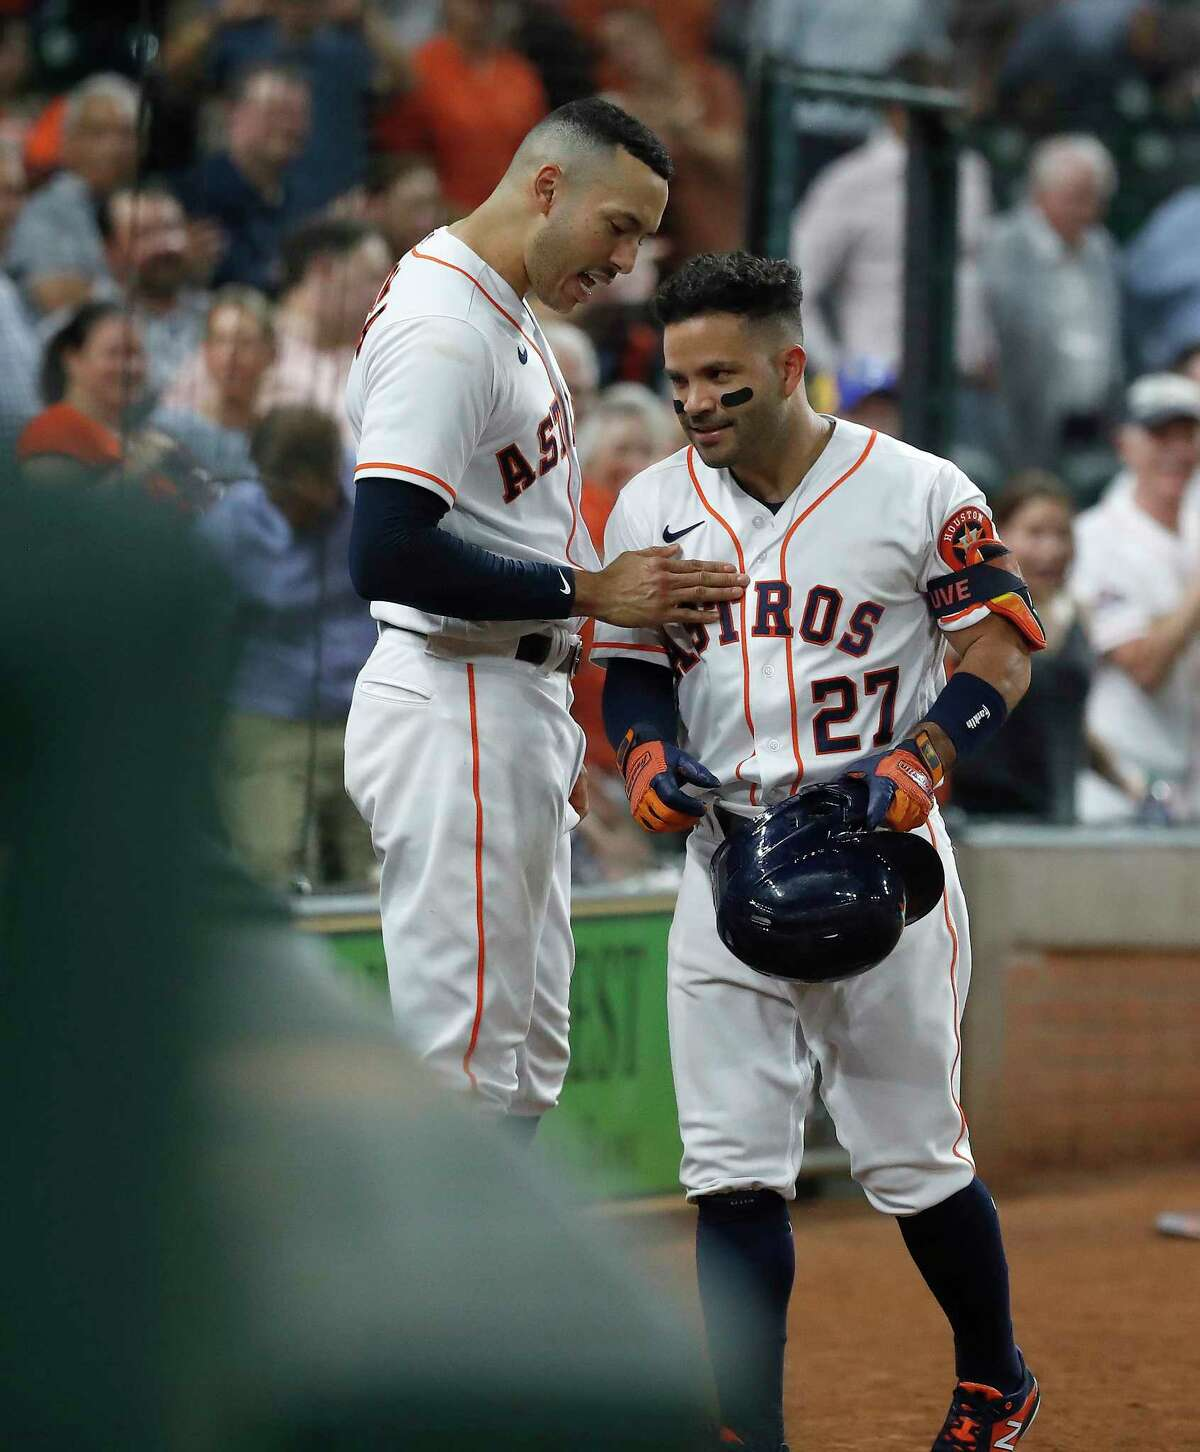 Houston Astros Jose Altuve (27) celebrates with Carlos Correa (1) after his solo home run during the eighth inning of an MLB baseball game at Minute Maid Park, Wednesday, June 16, 2021.